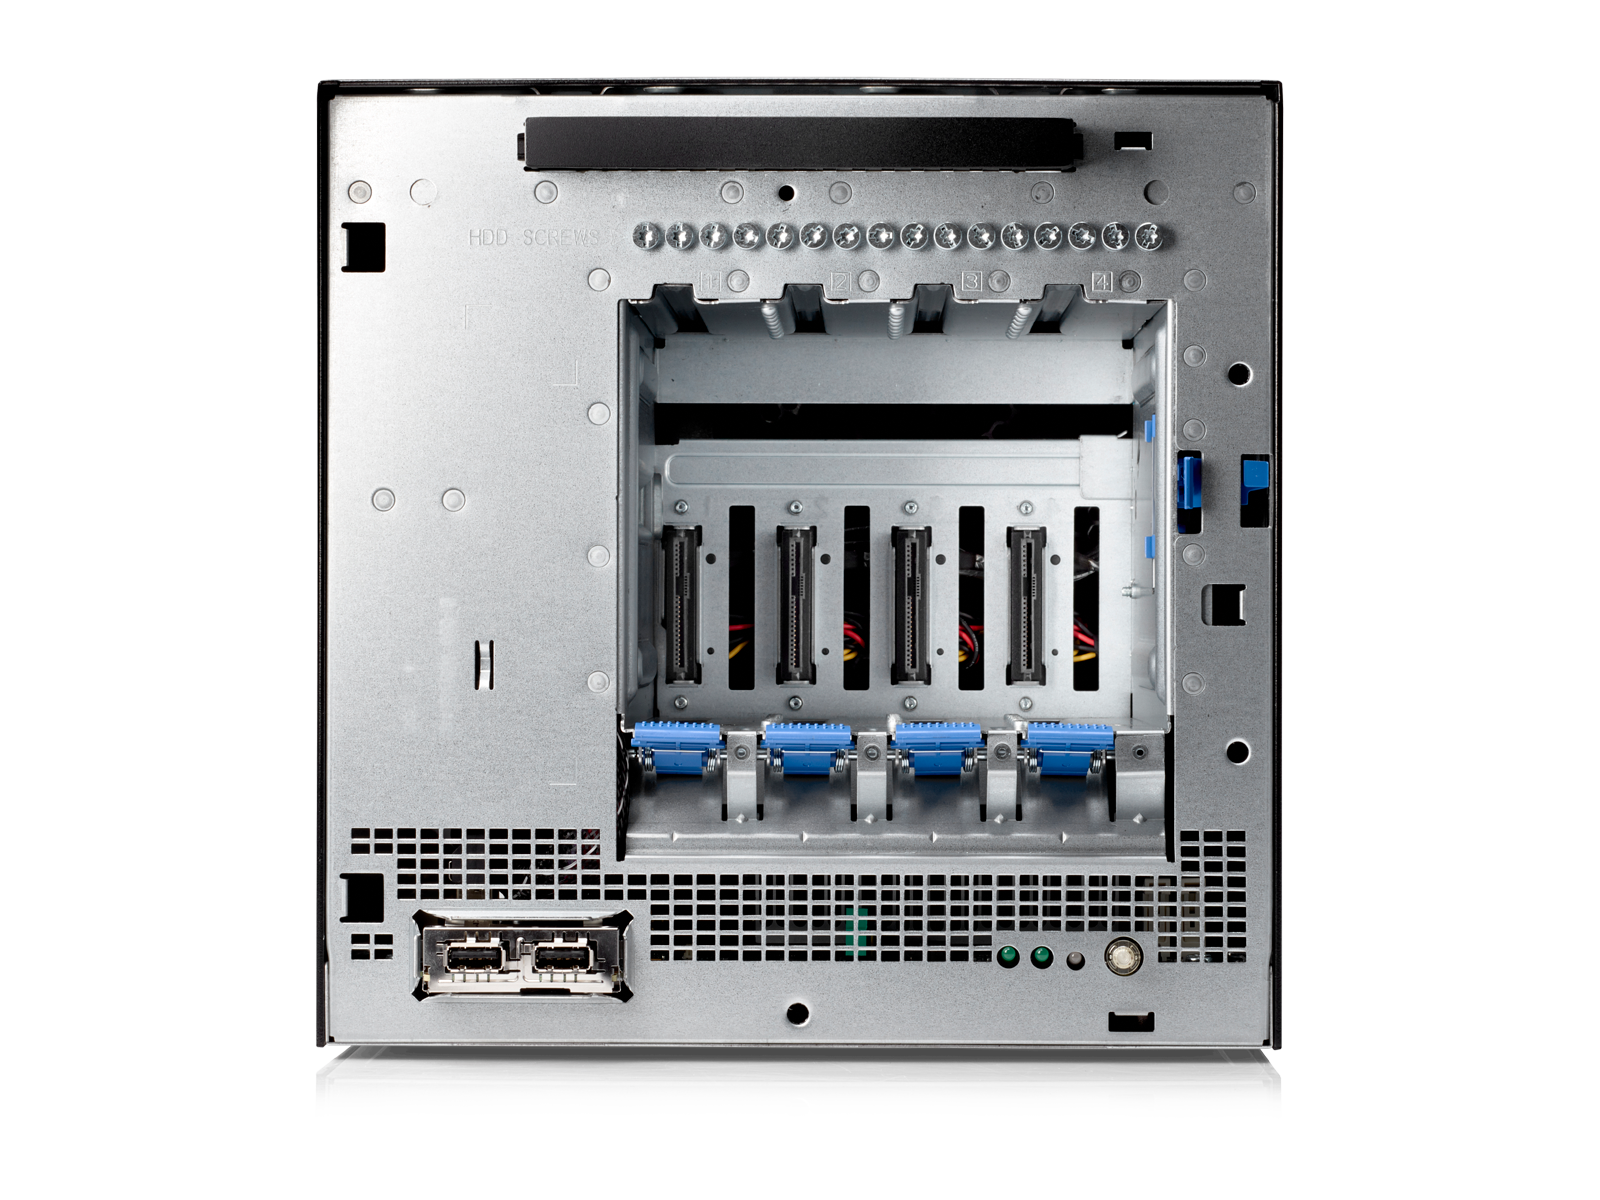 Home (Personal) HPE MicroServer Gen10 - ClearCenter